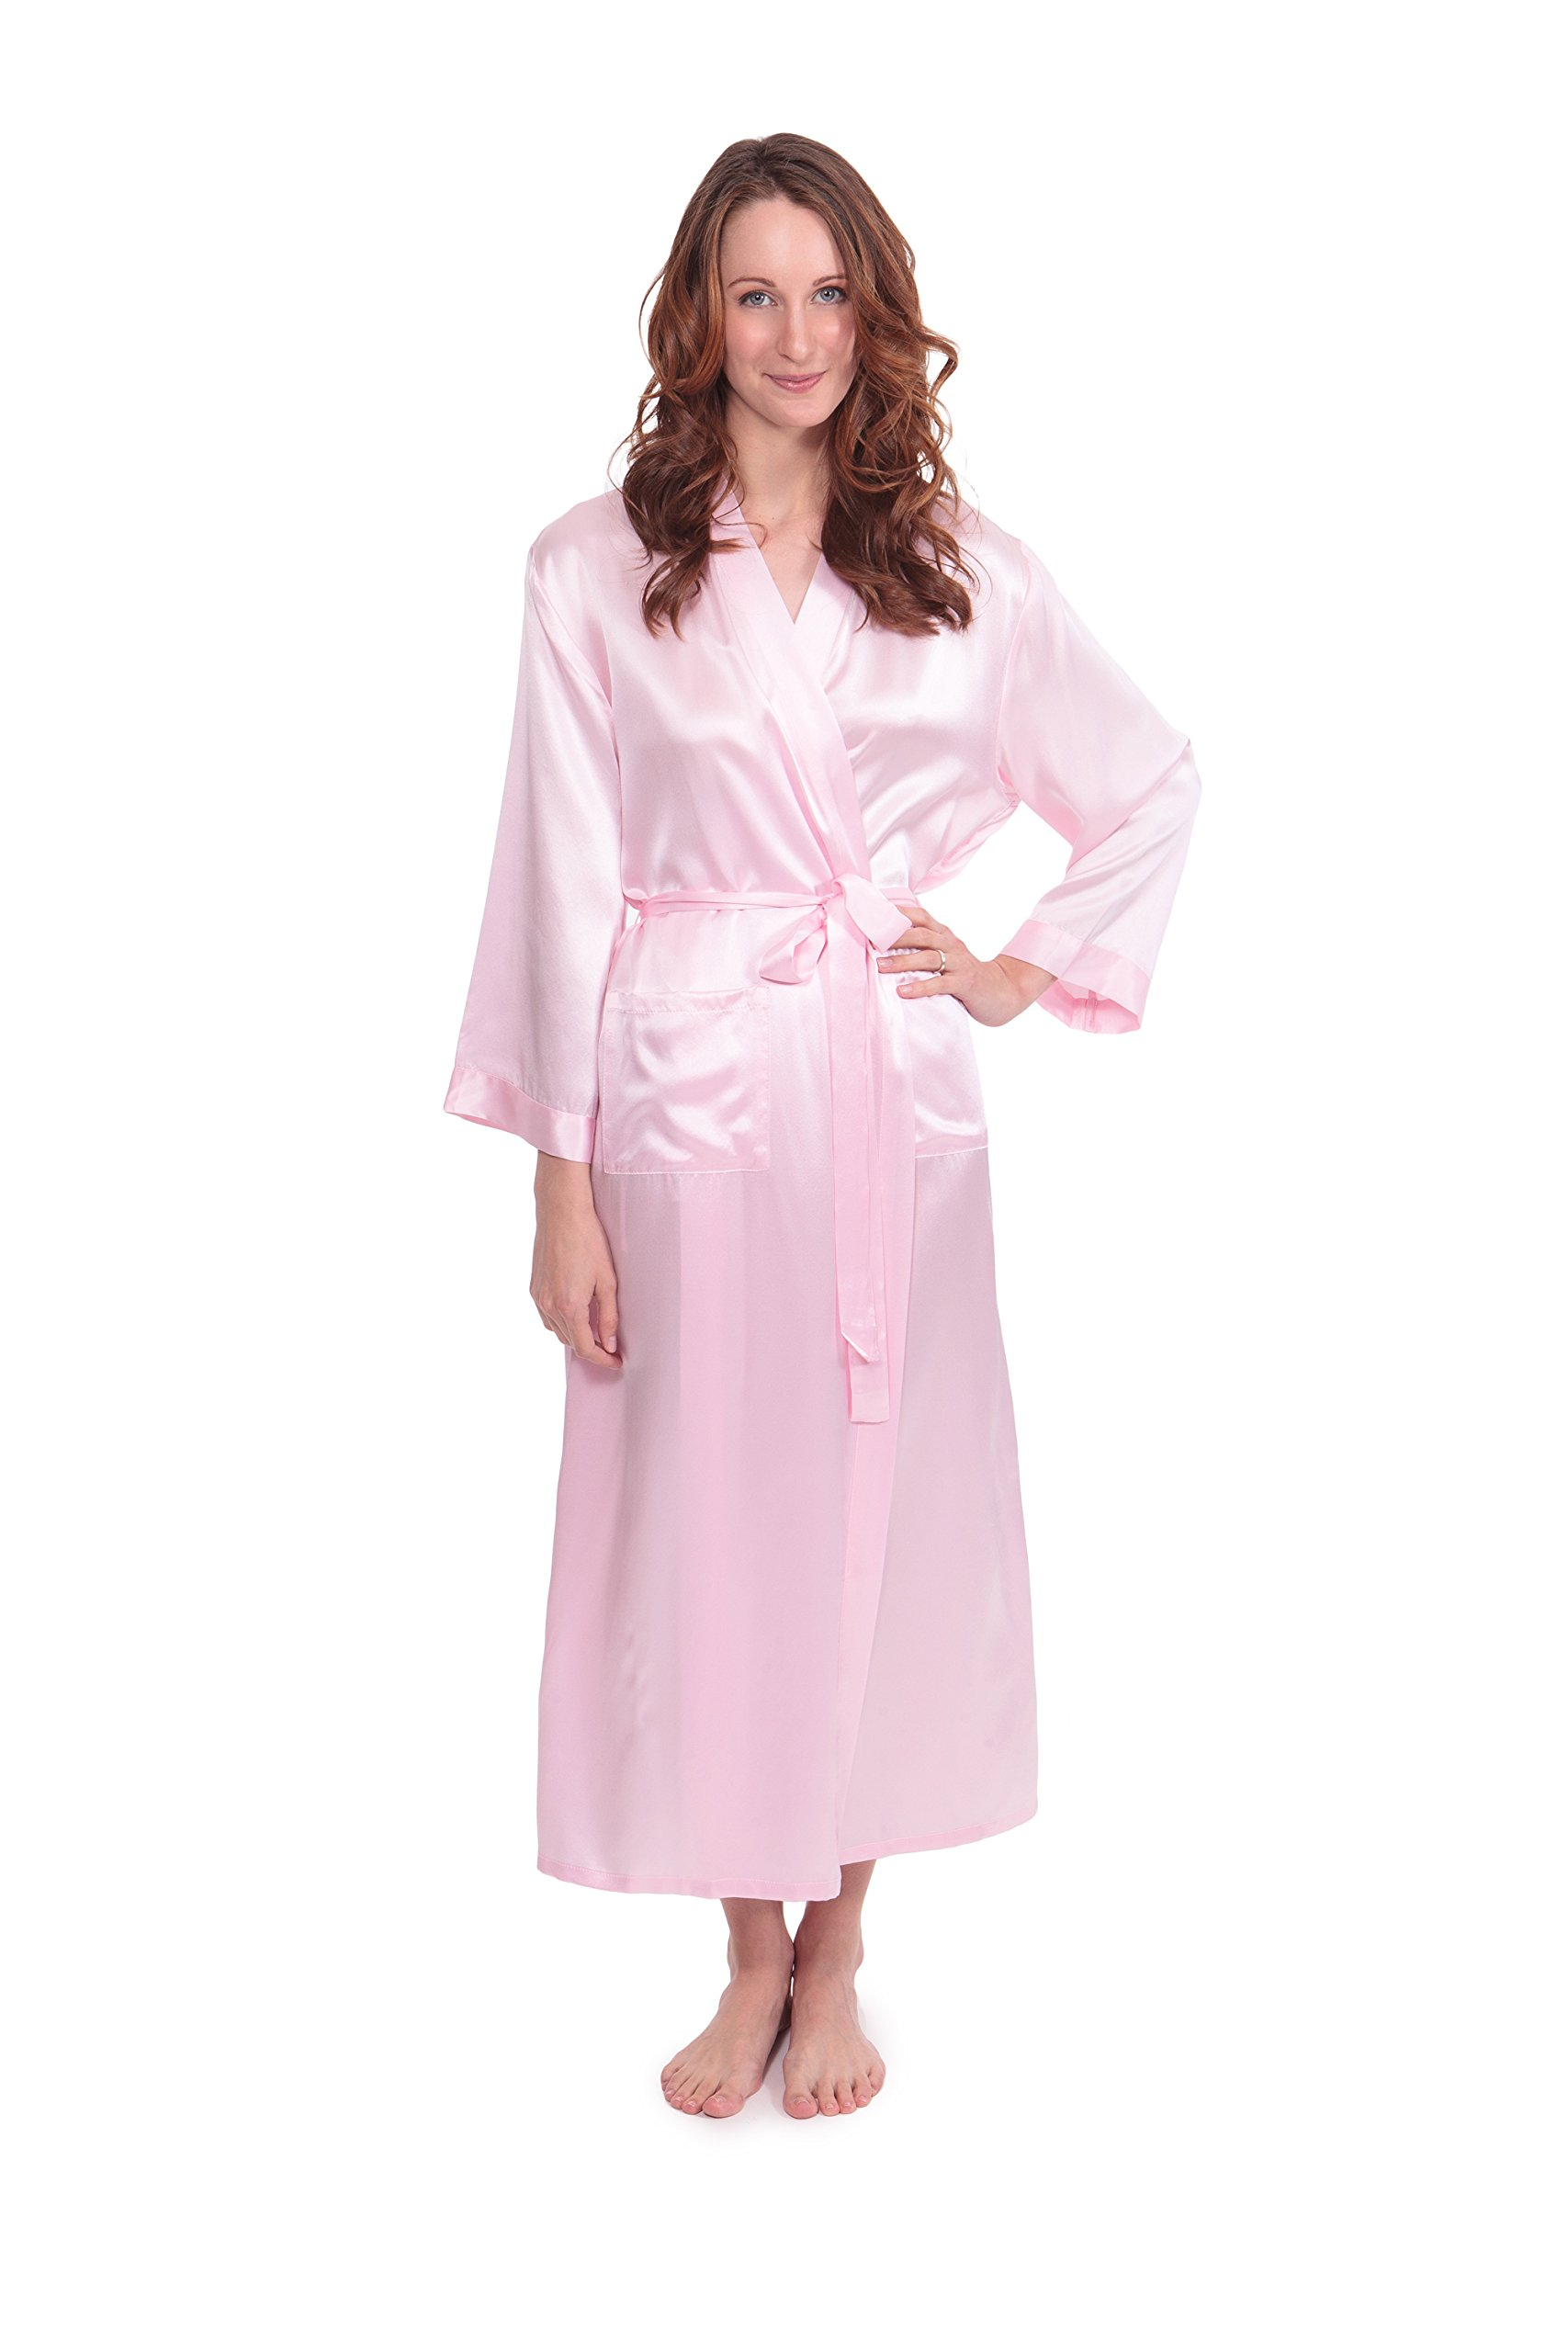 Women's 100% Long Silk Robe - Luxury Bathrobe by TexereSilk (Perla Naturale, Barely Pink, Large/X-Large) Beautiful Gifts for Daughter Wife Fiancee WS0101-BPN-LXL